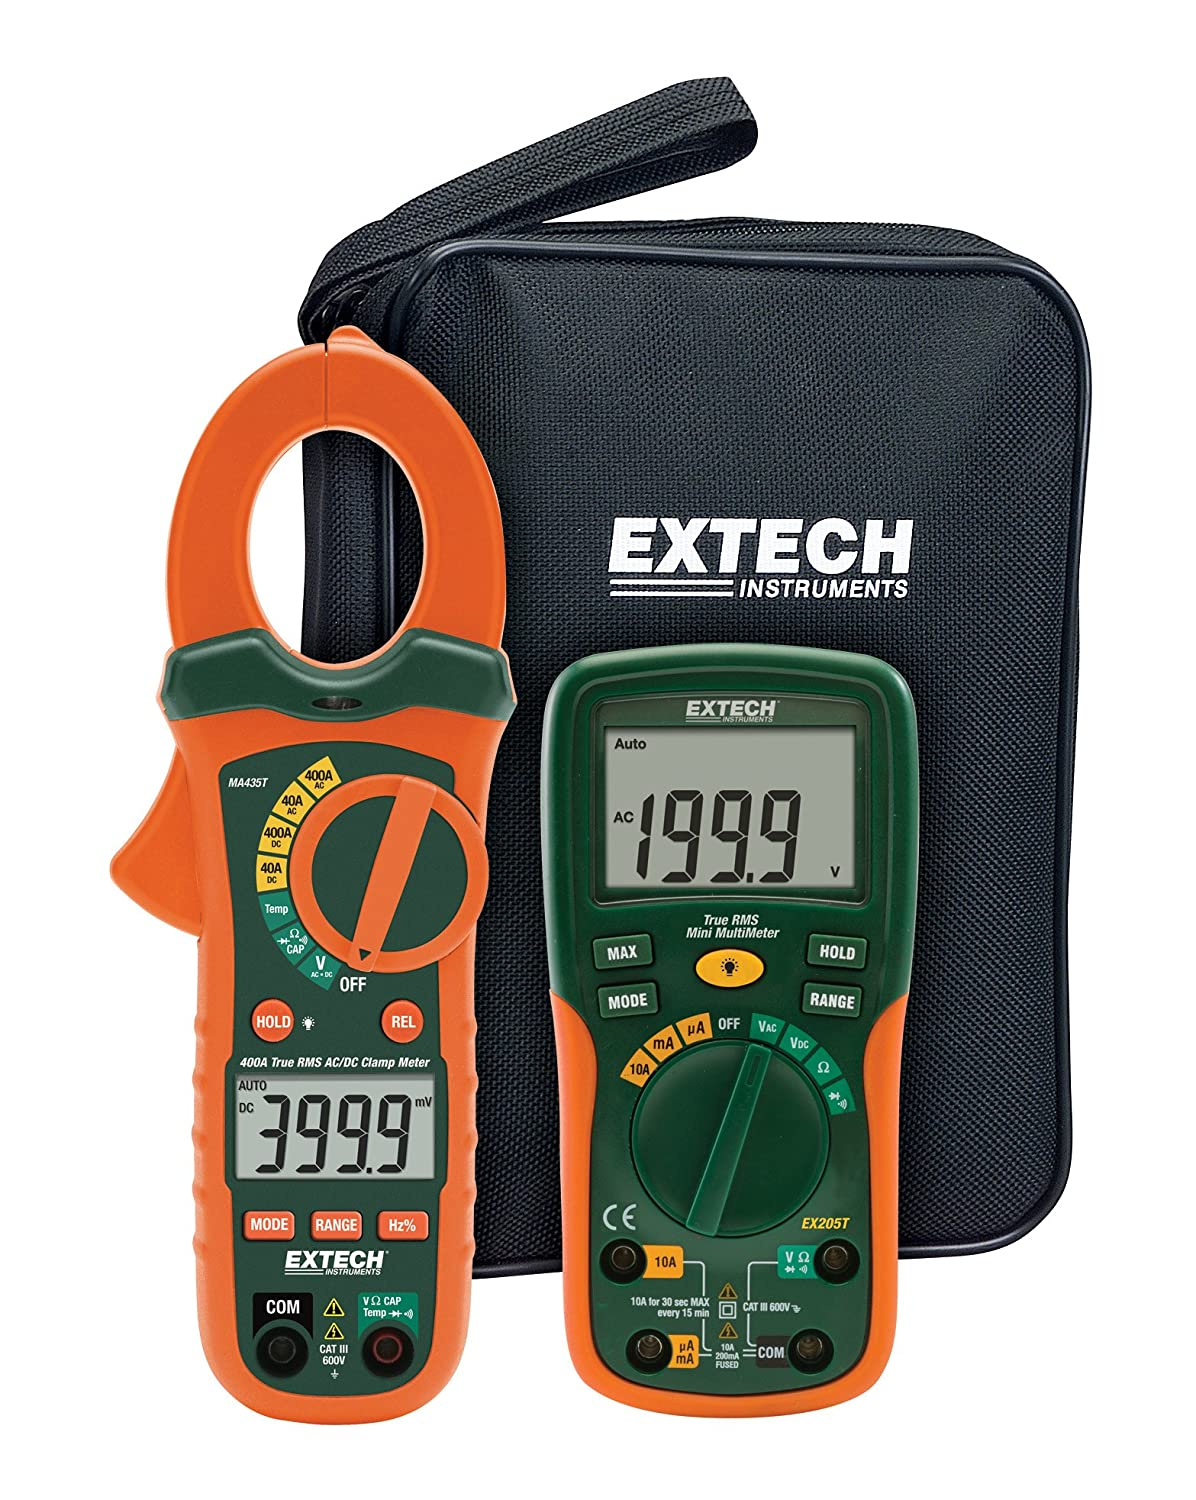 Extech ETK35 Electrical Test Kit with True RMS AC/DC Clamp Meter Extech Instruments